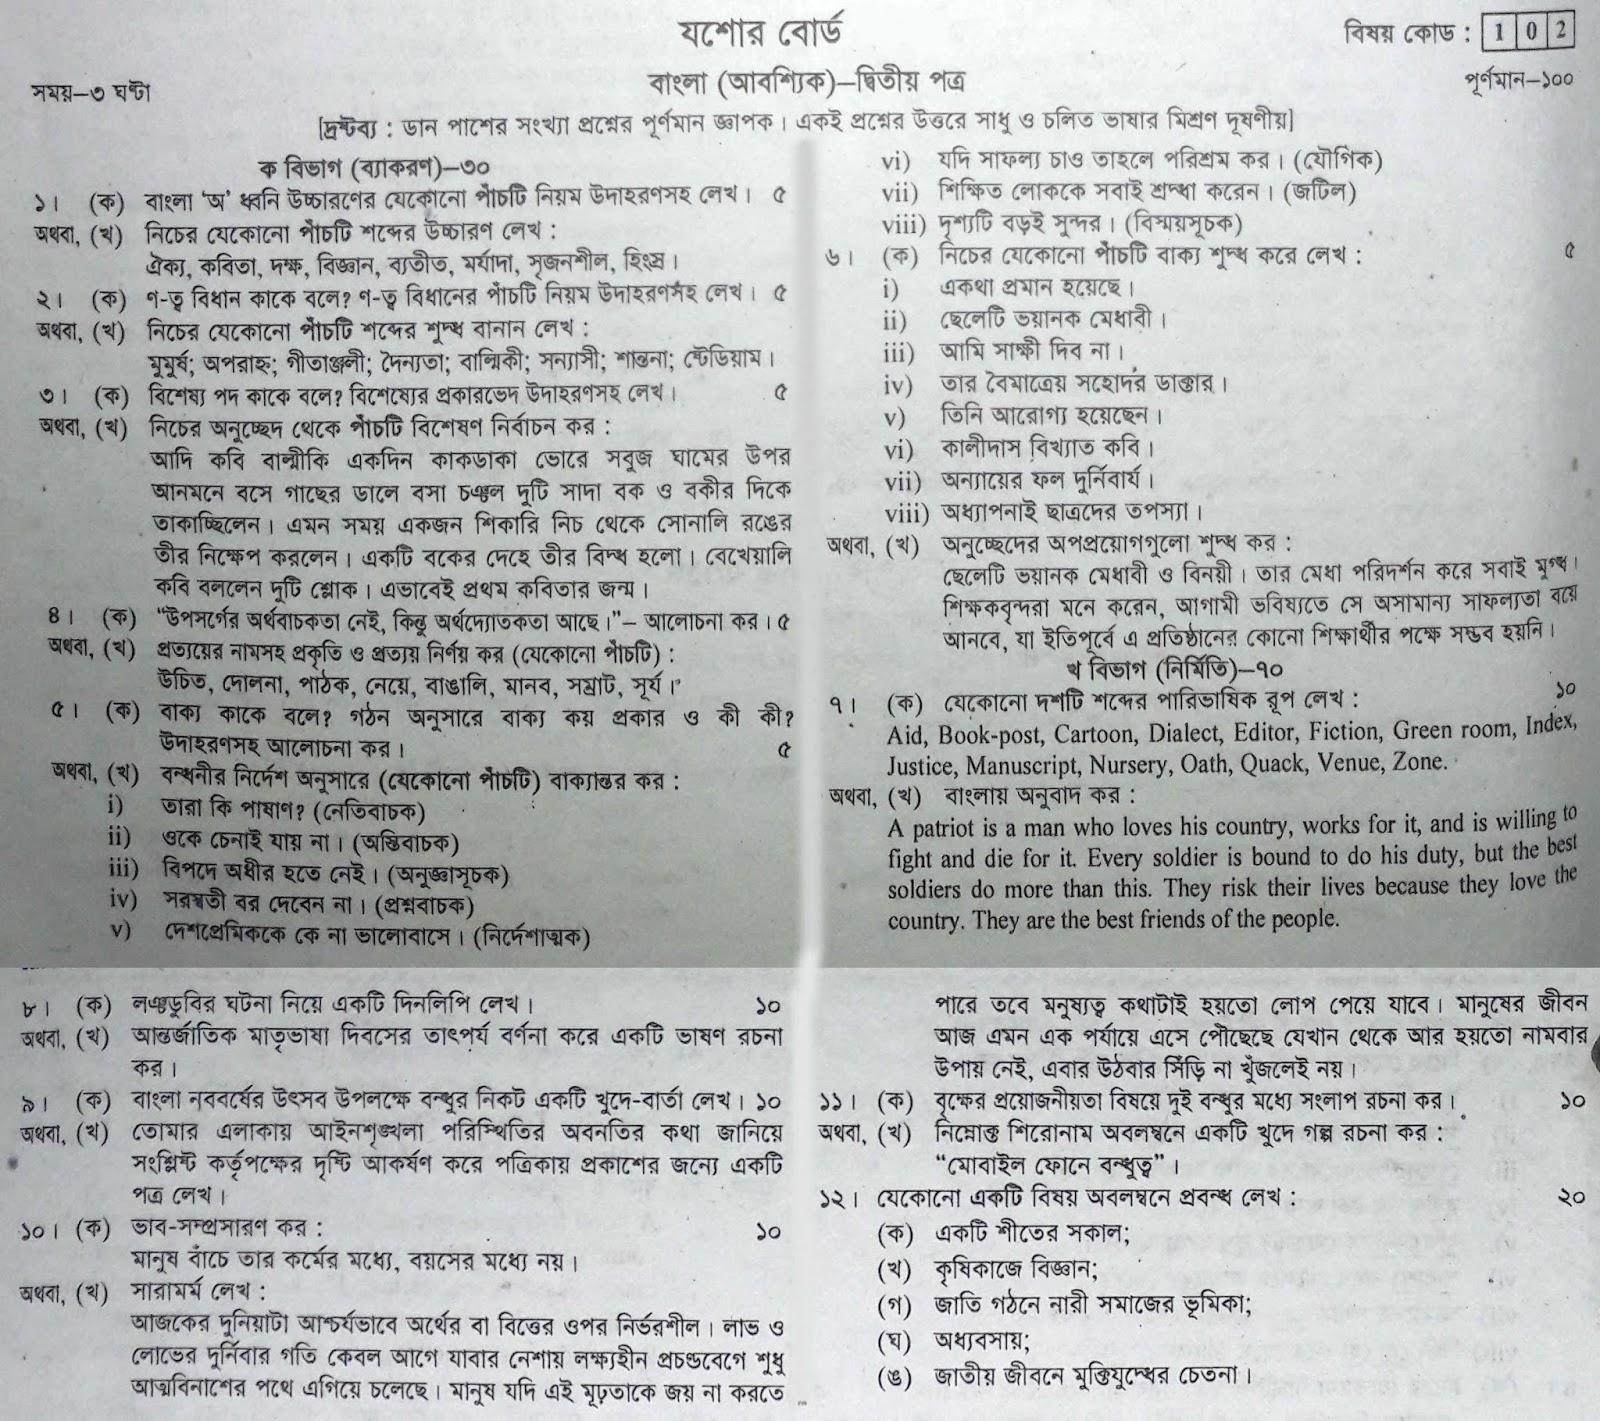 hsc bangla 2nd paper model question, question paper, model question, mcq question, question pattern, syllabus for dhaka board, all boards